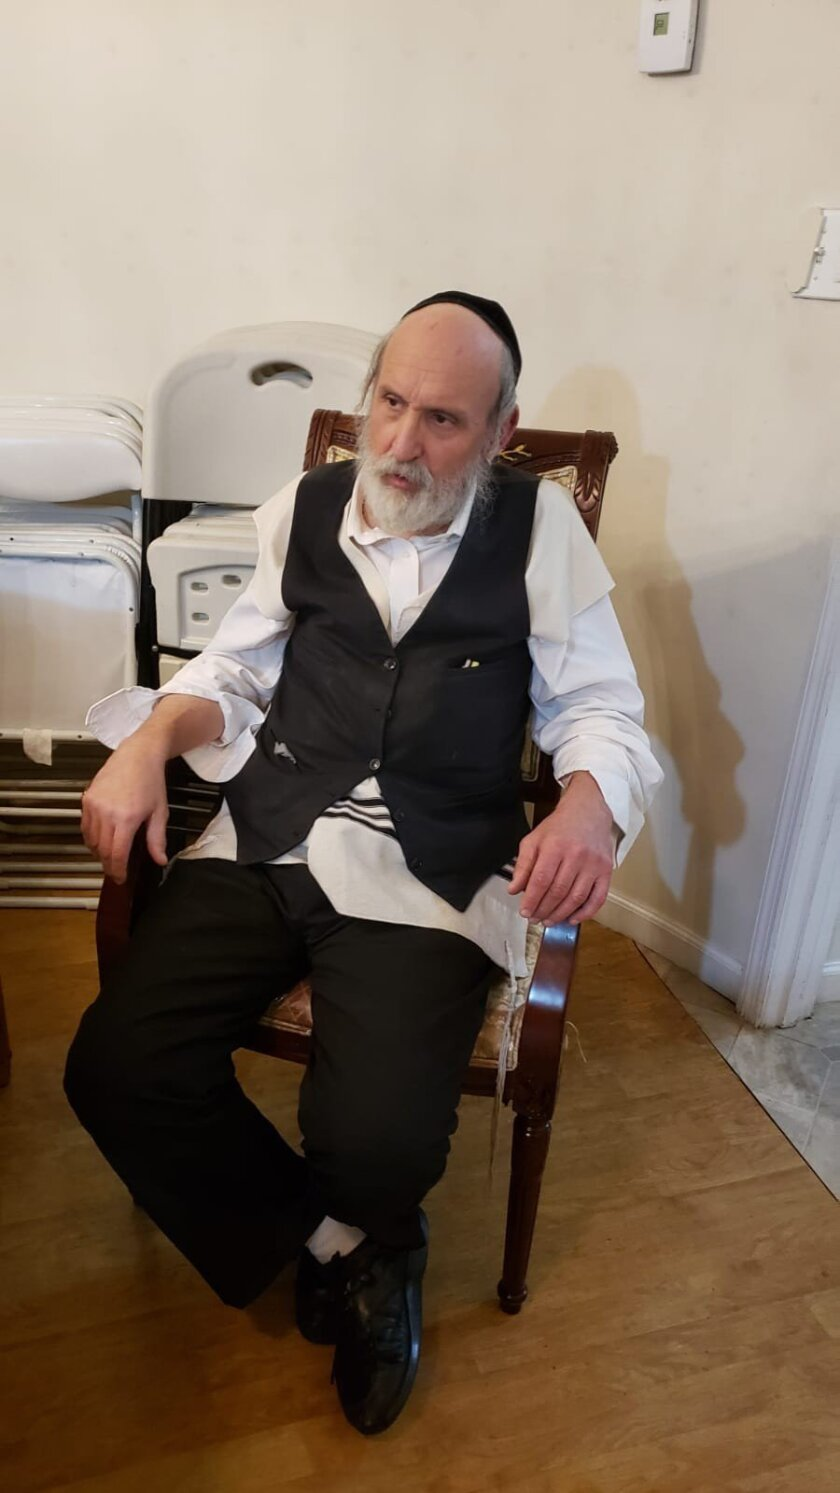 Lipa Schwartz, 62, was brutally attacked by Farrukh Afzalin in an apparent hate crime in Brooklyn on Sunday.